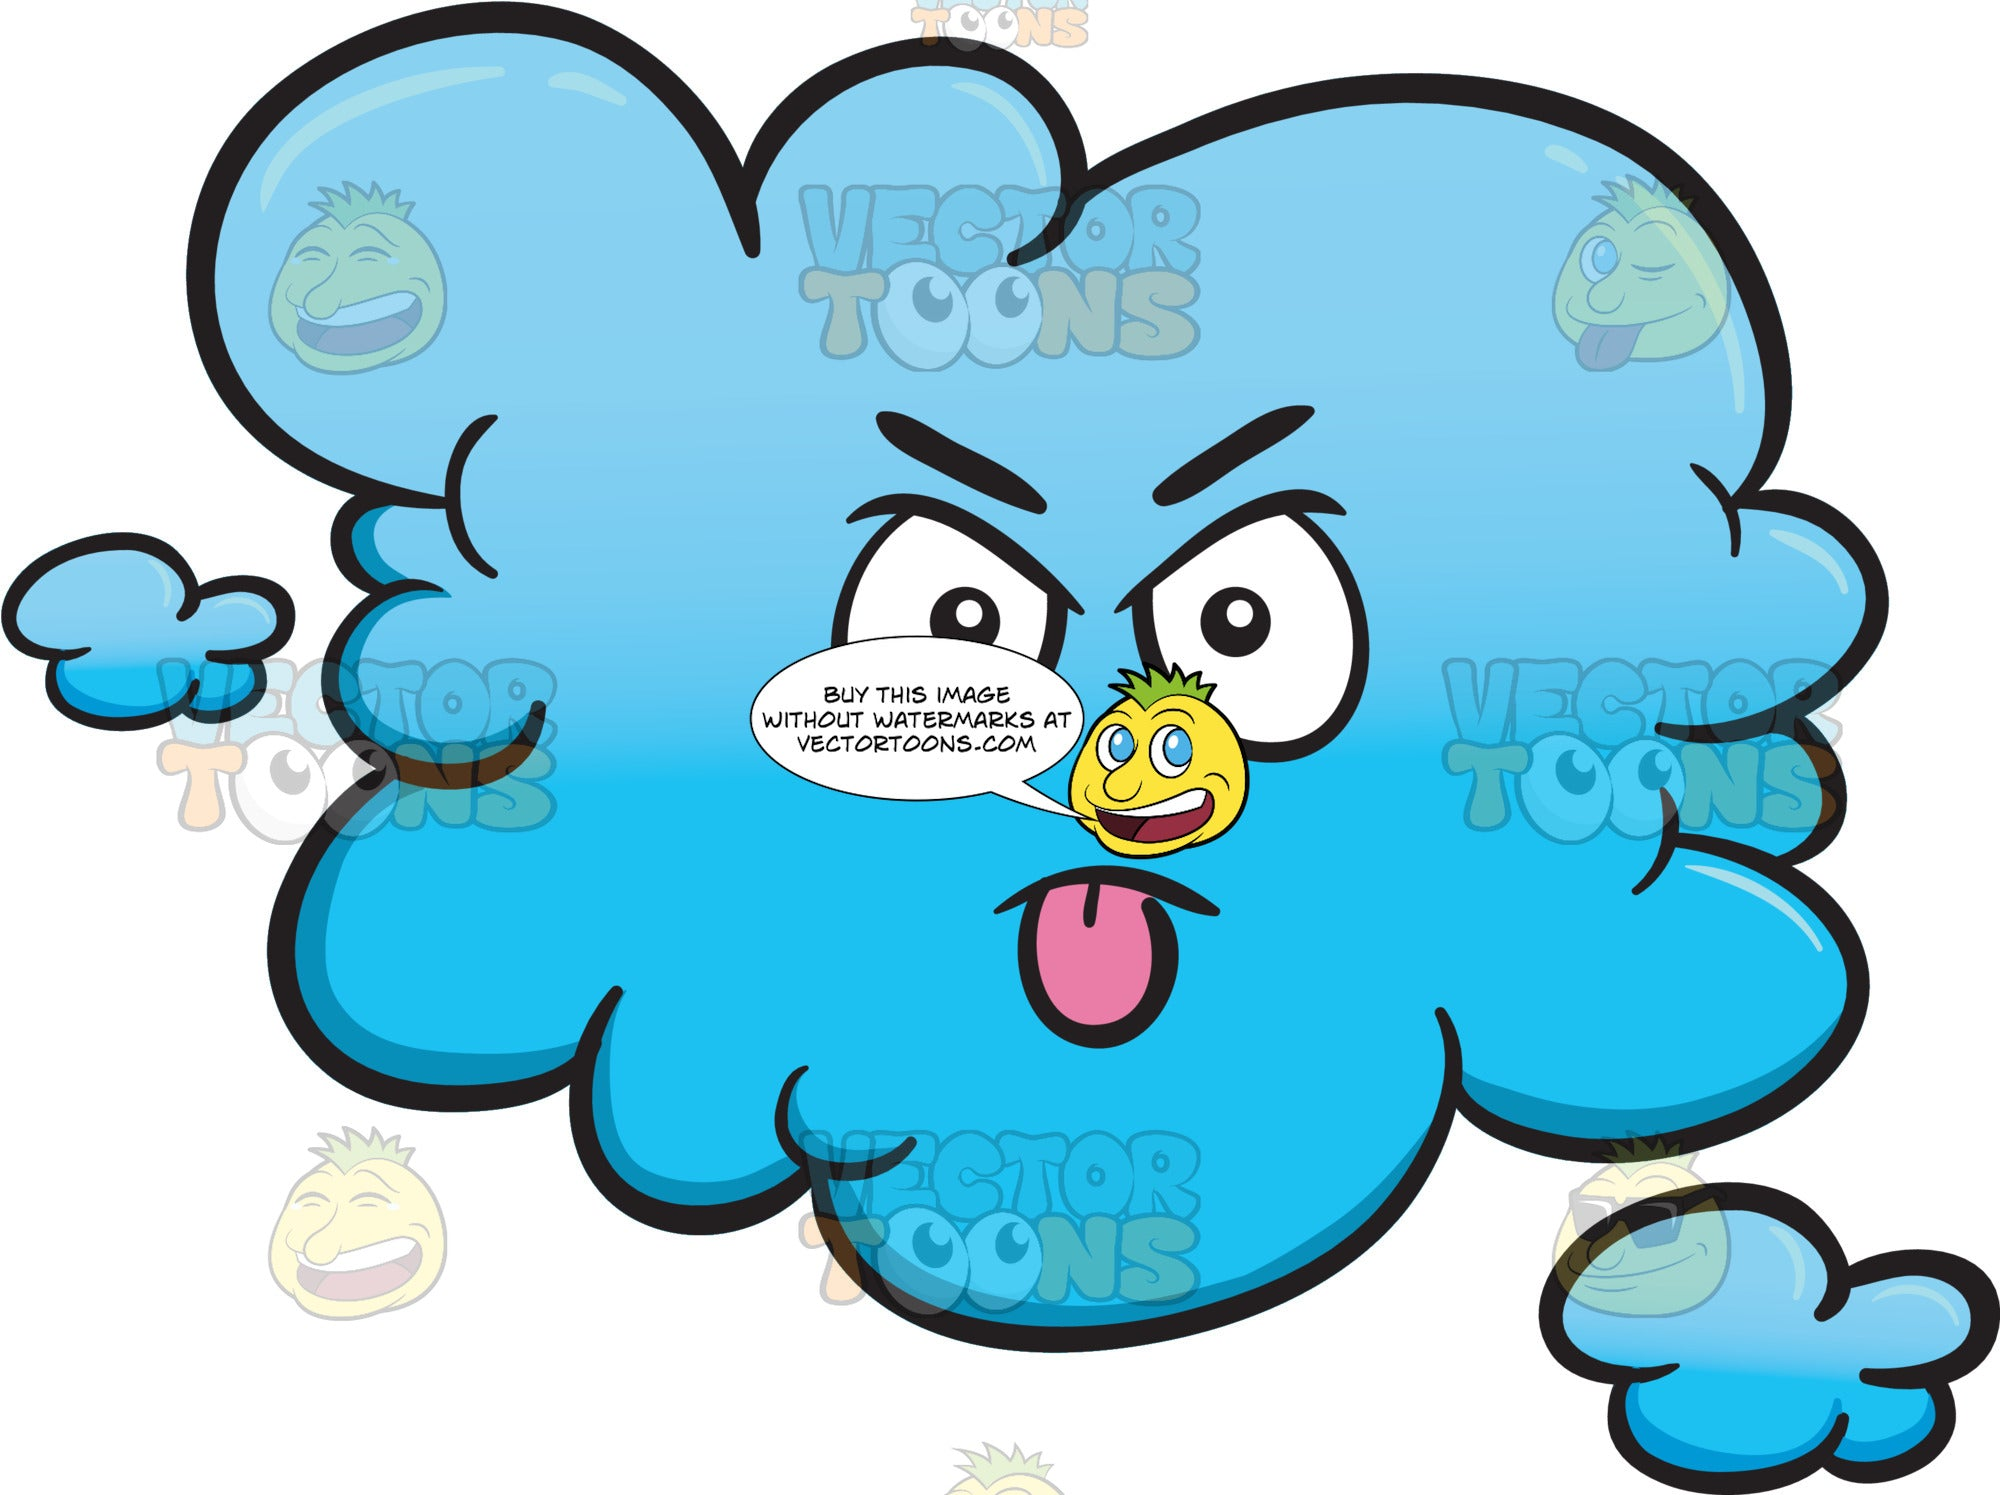 cloud looking pissed sticking out tongue emoji clipart cartoons by vectortoons https vectortoons com products cloud looking pissed sticking out tongue emoji